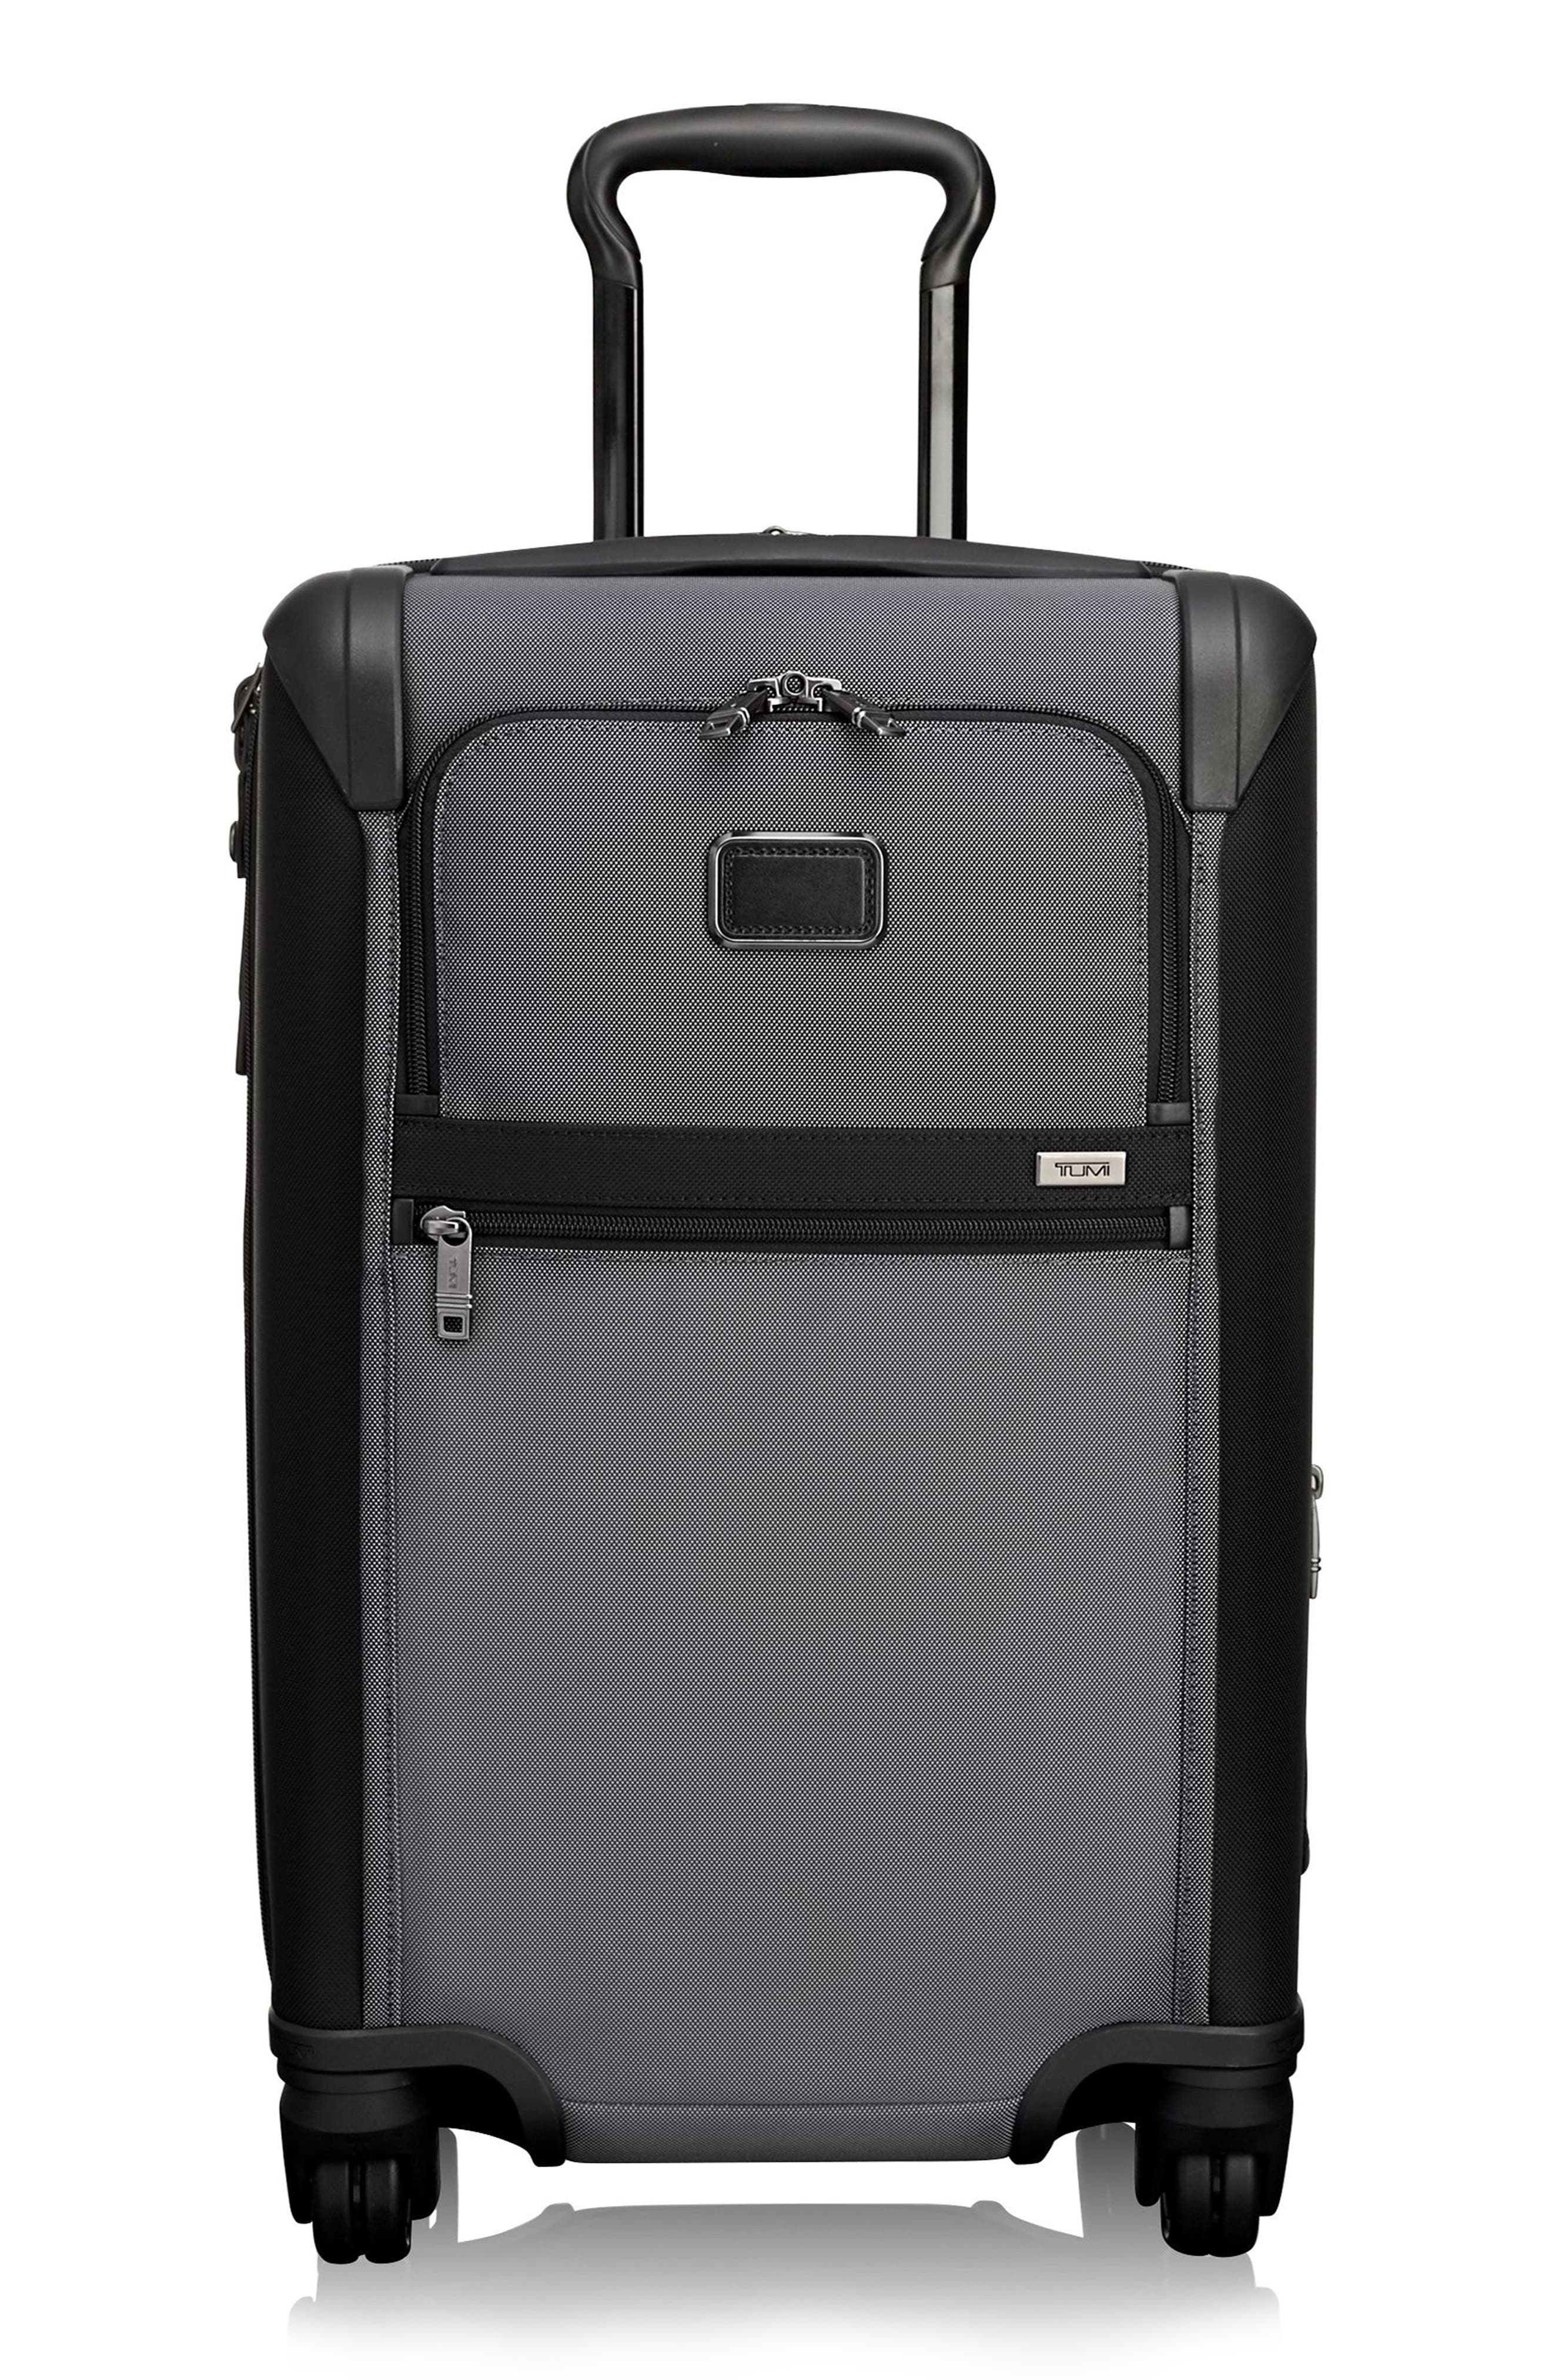 Tumi Alpha 2 International 22-Inch Wheeled Carry-On